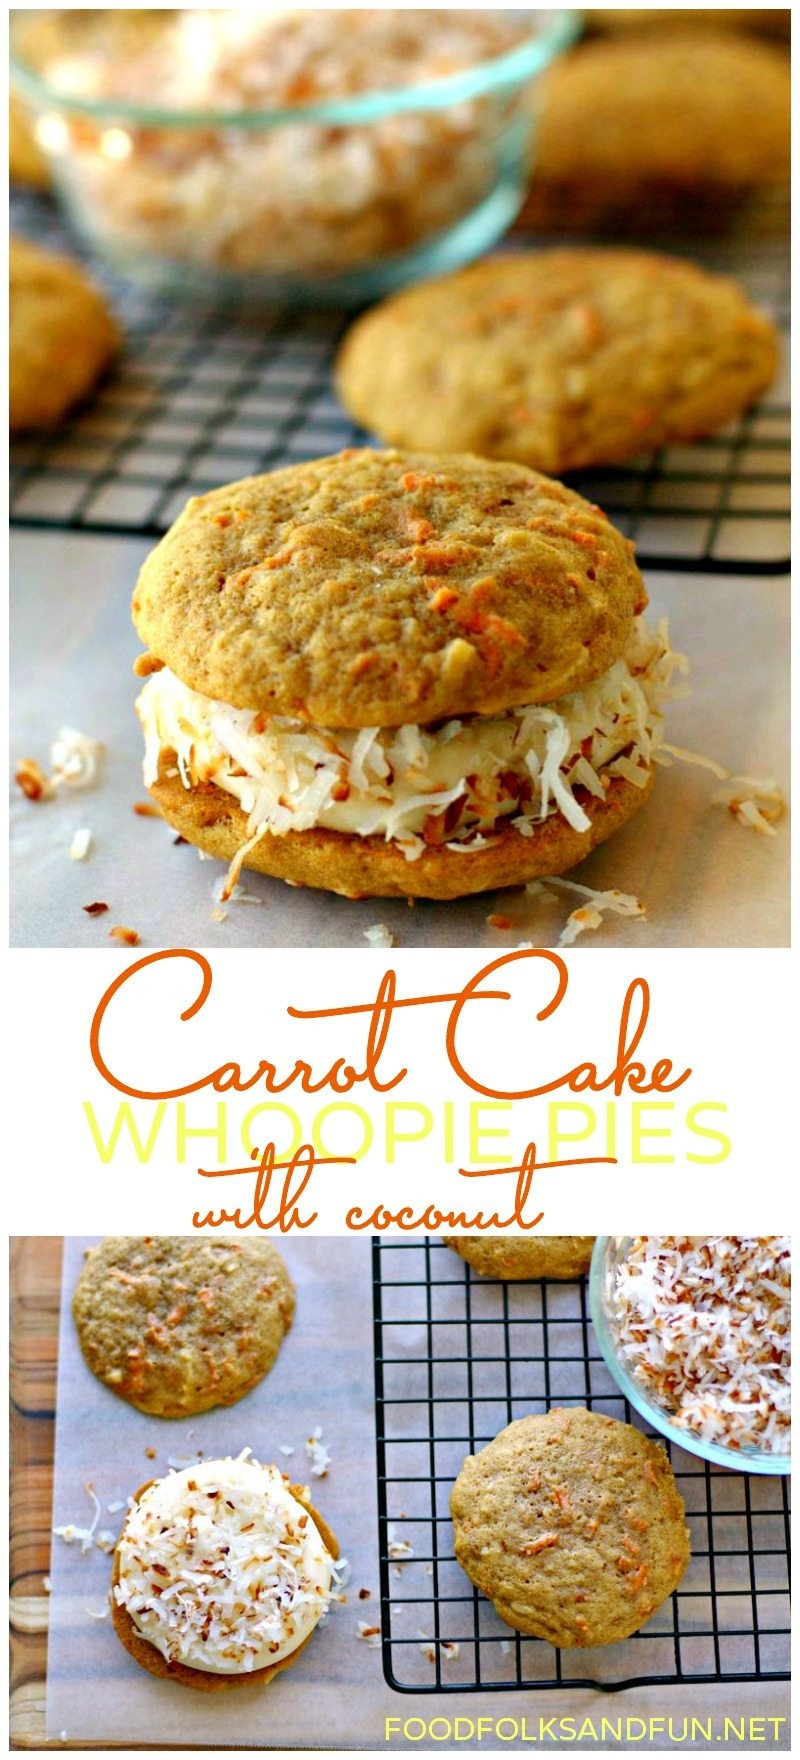 Carrot Cake Whoopie Pies Recipe with Coconut 6